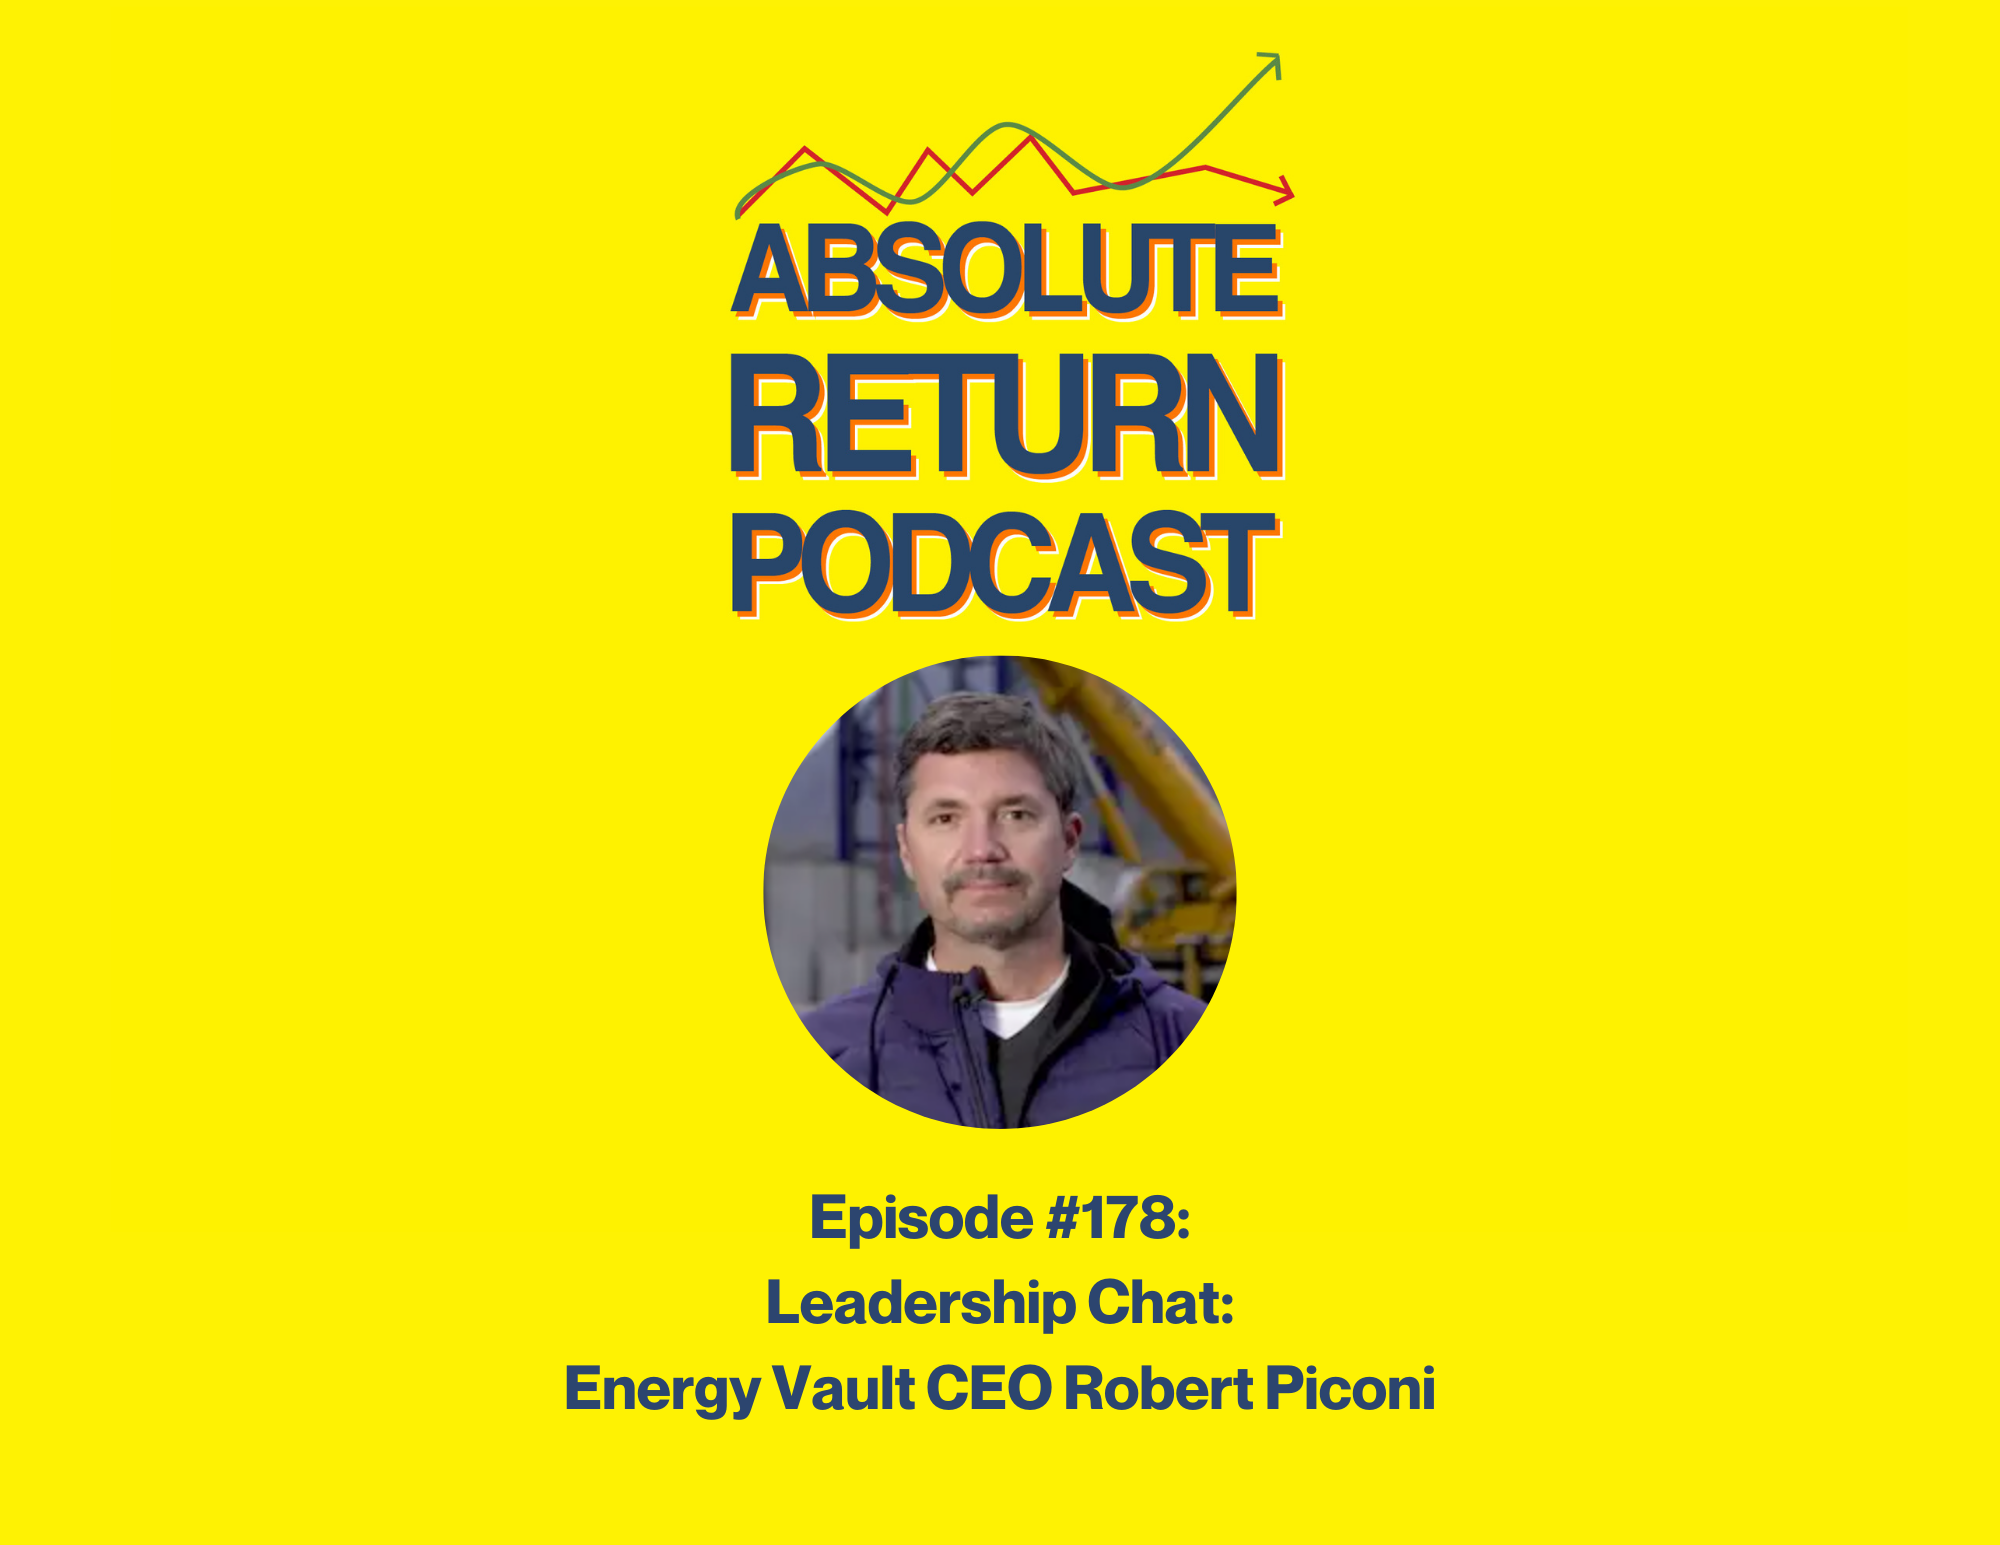 Absolute Return Podcast #178: Energy Vault CEO Robert Piconi